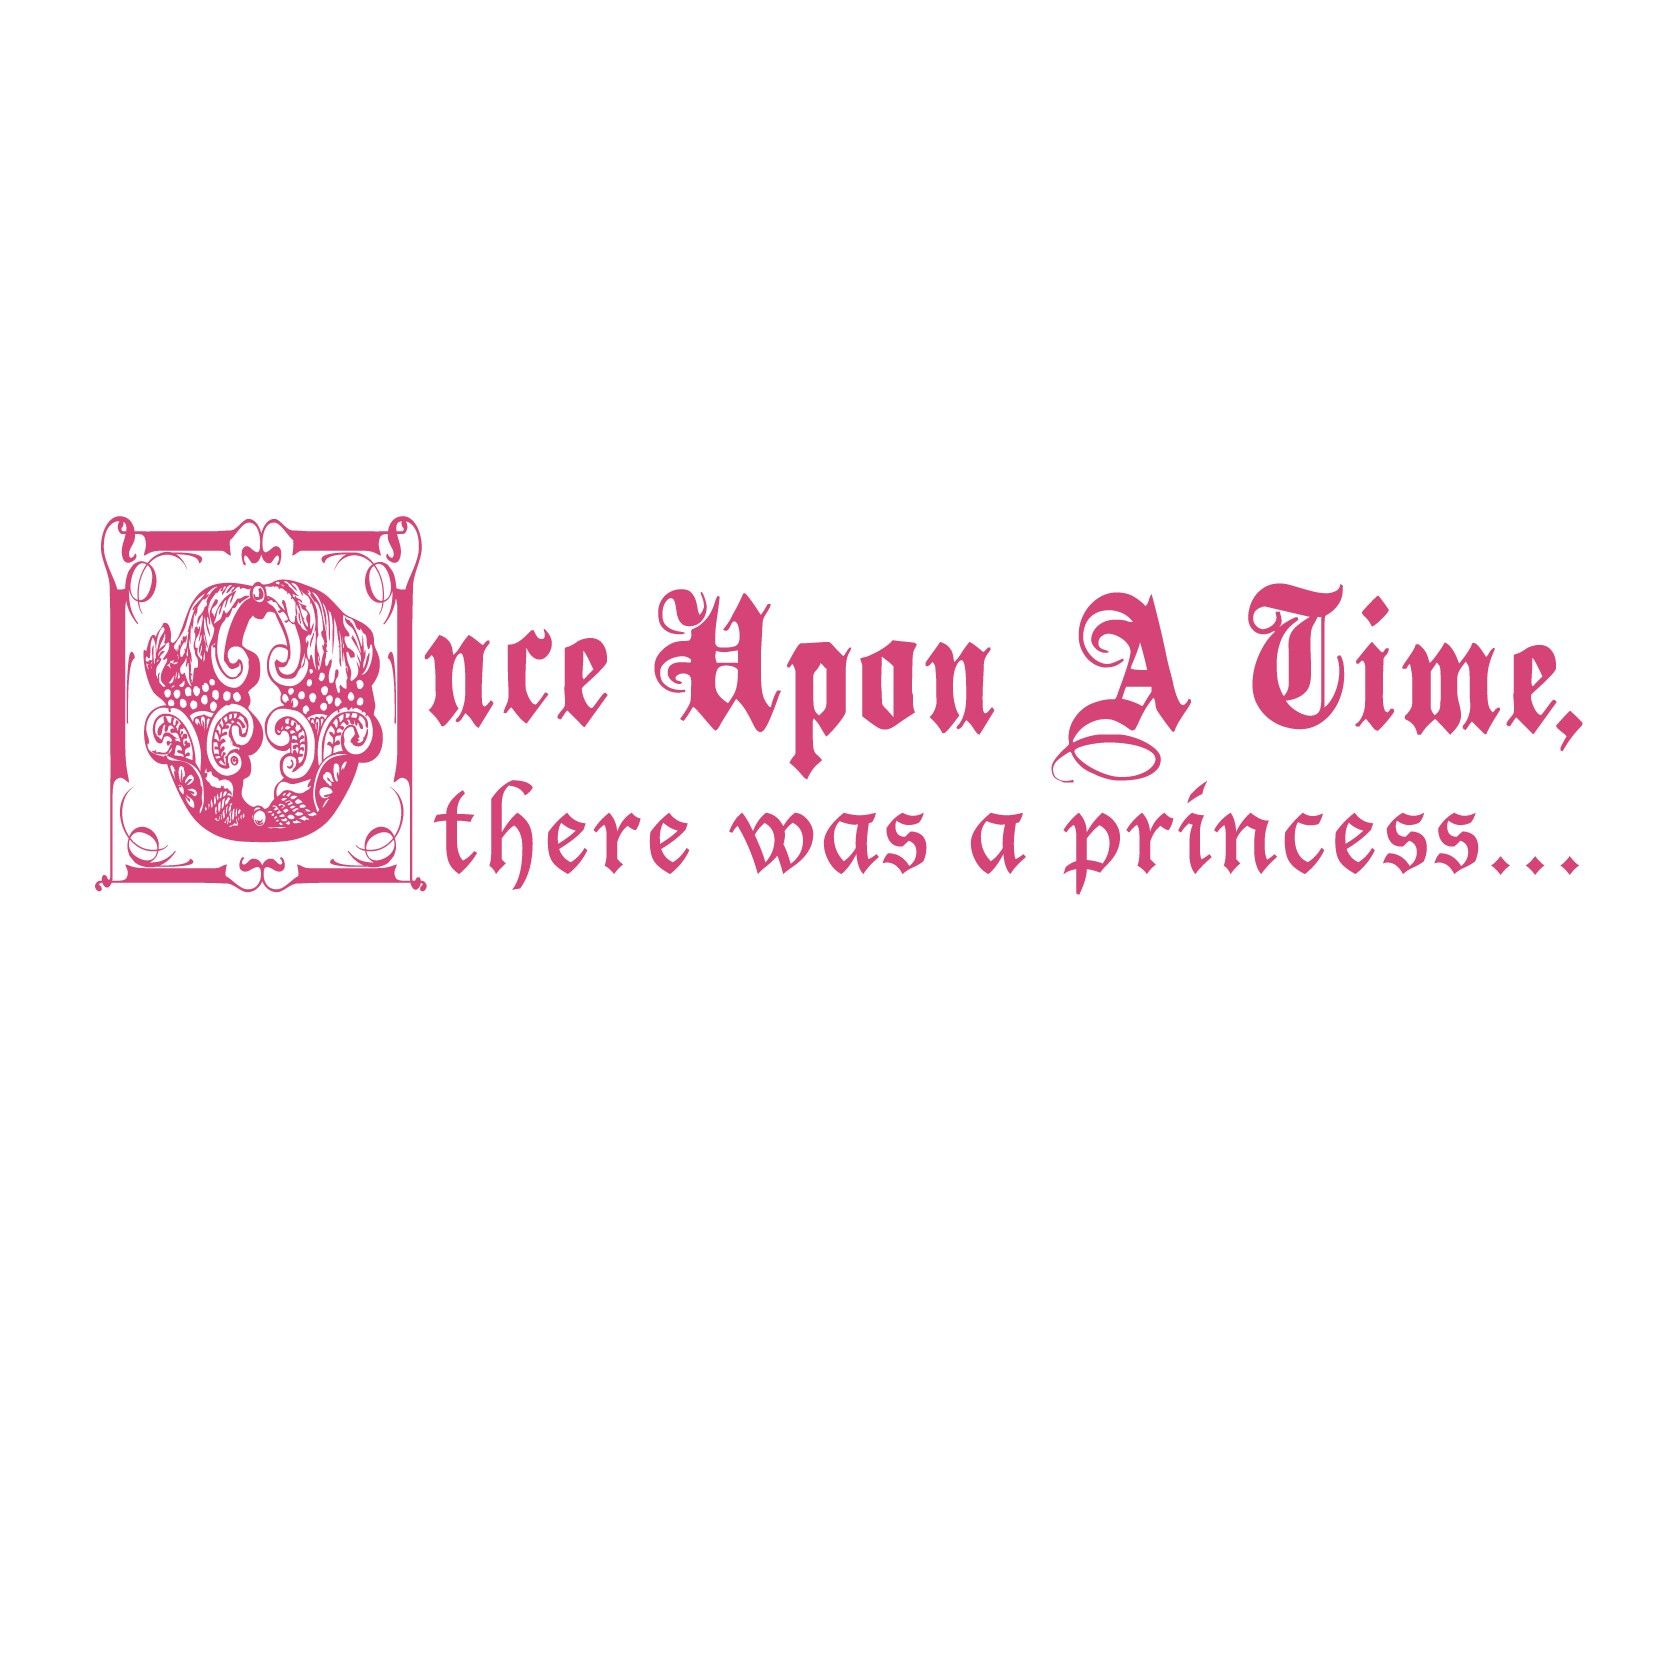 Godmother quotes funny quotesgram - Quotes About Fairy Tales Princesses Quotesgram By Quotesgram